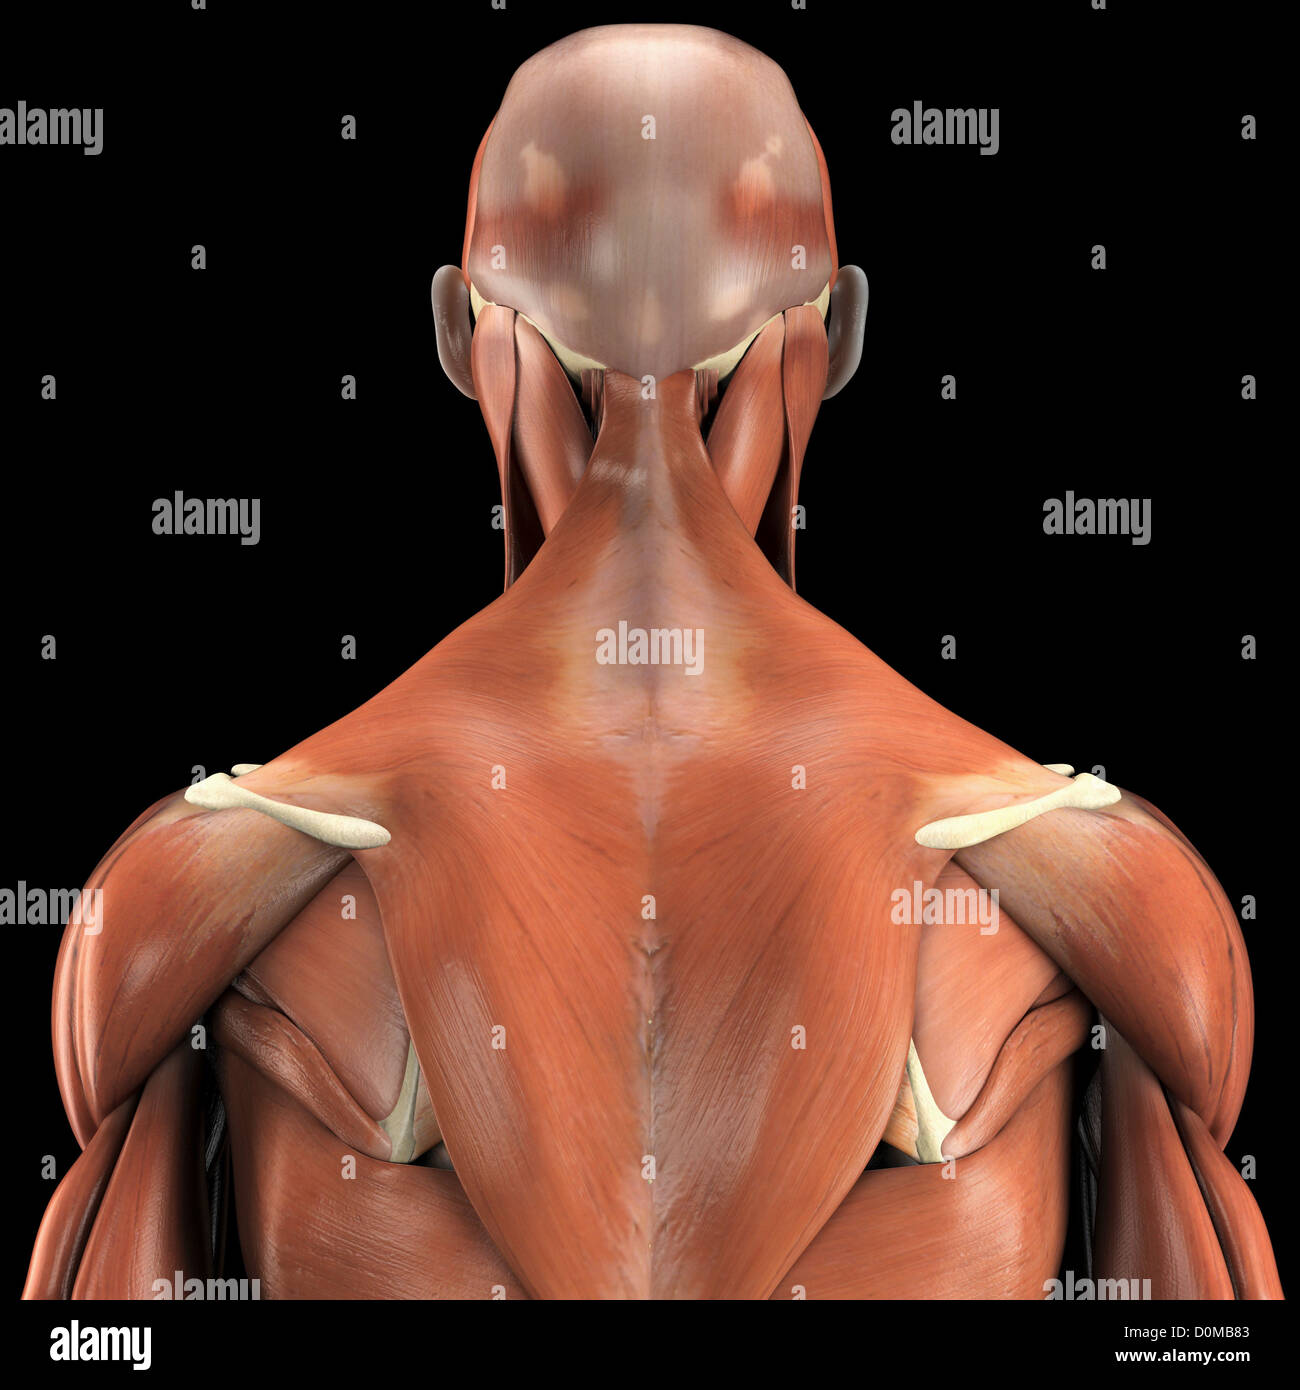 a human model showing the deltoid and trapezius as well as muscles, Muscles